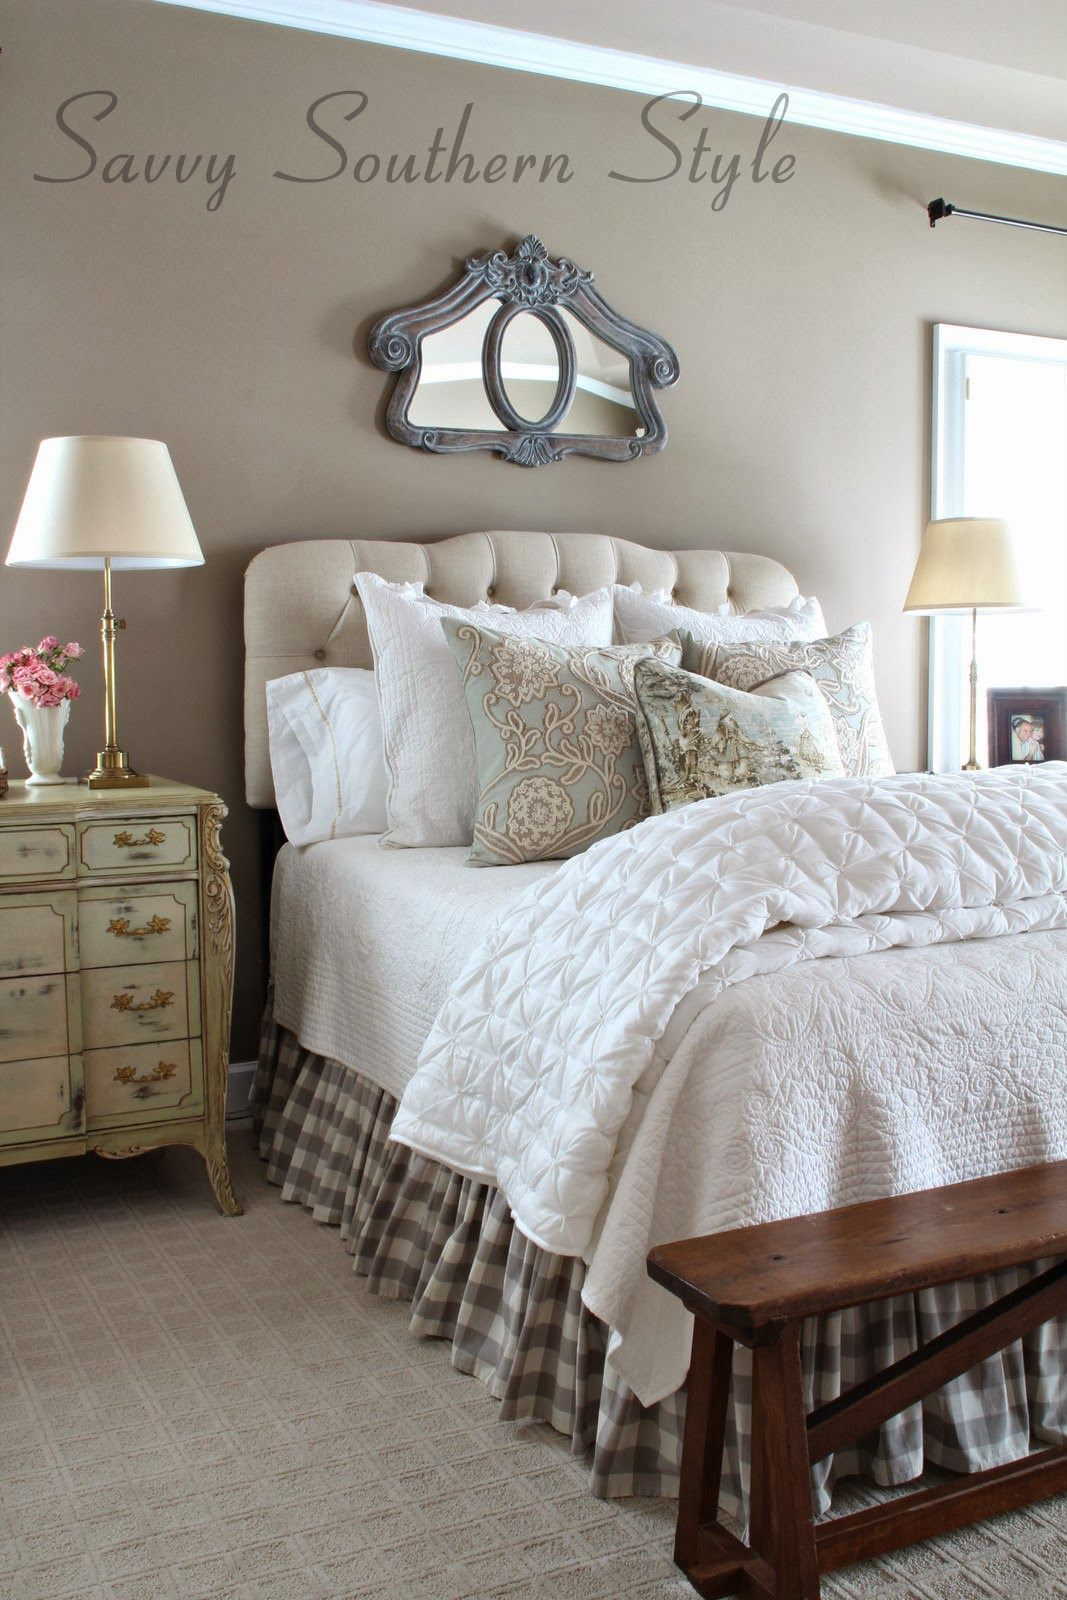 Savvy southern style adding french farmhouse style in the for Southern style bedroom